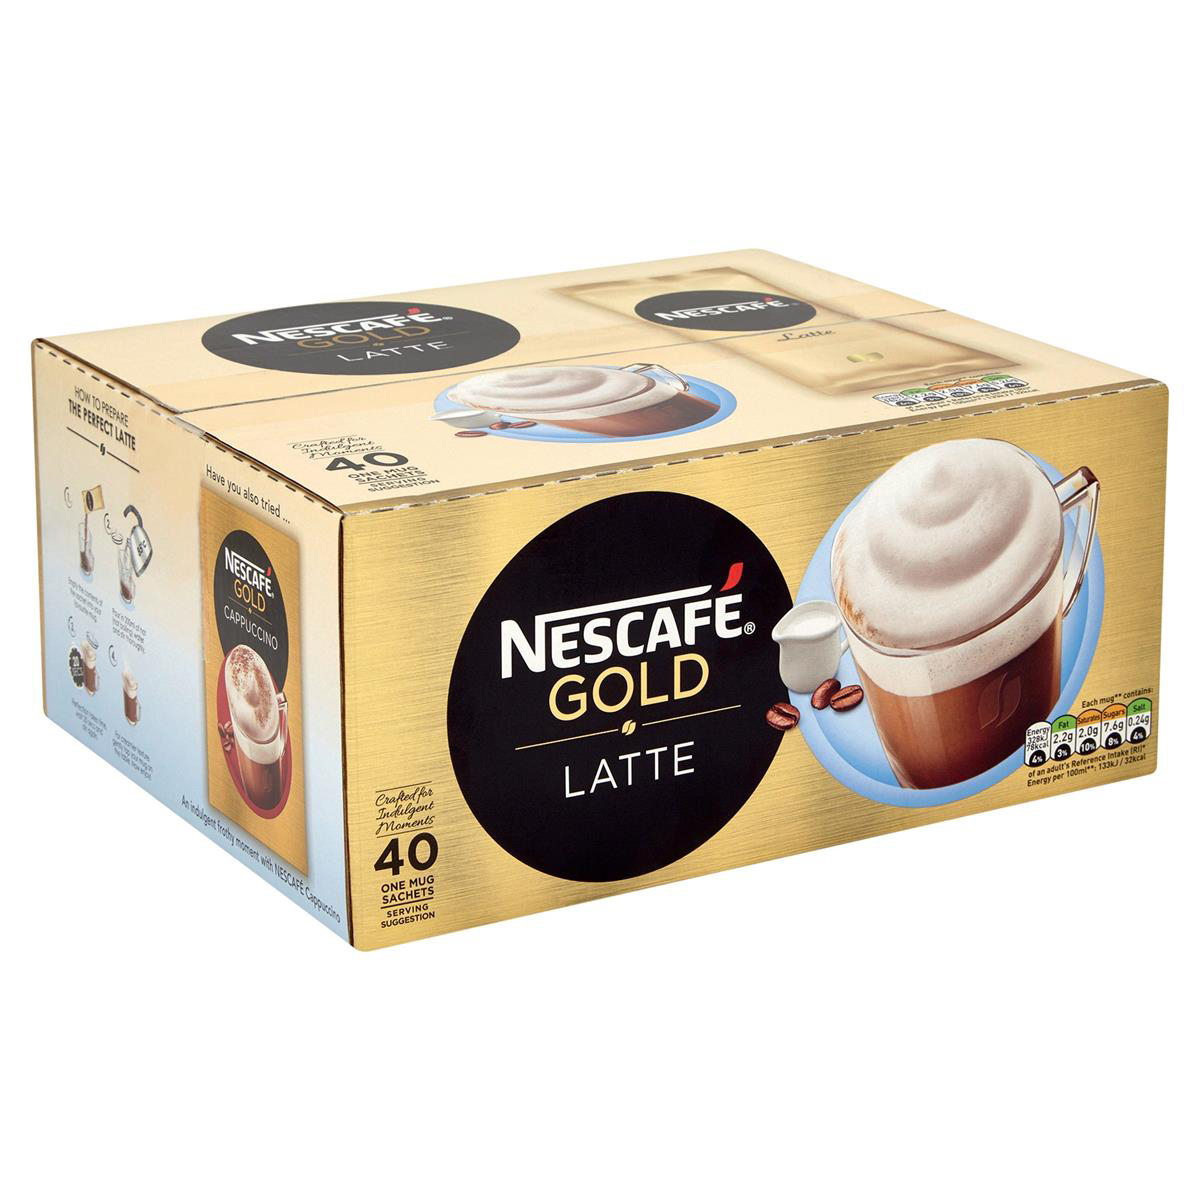 Coffee Nescafe Gold Latte Instant Coffee Sachets One Cup Ref 12314884 Pack 40